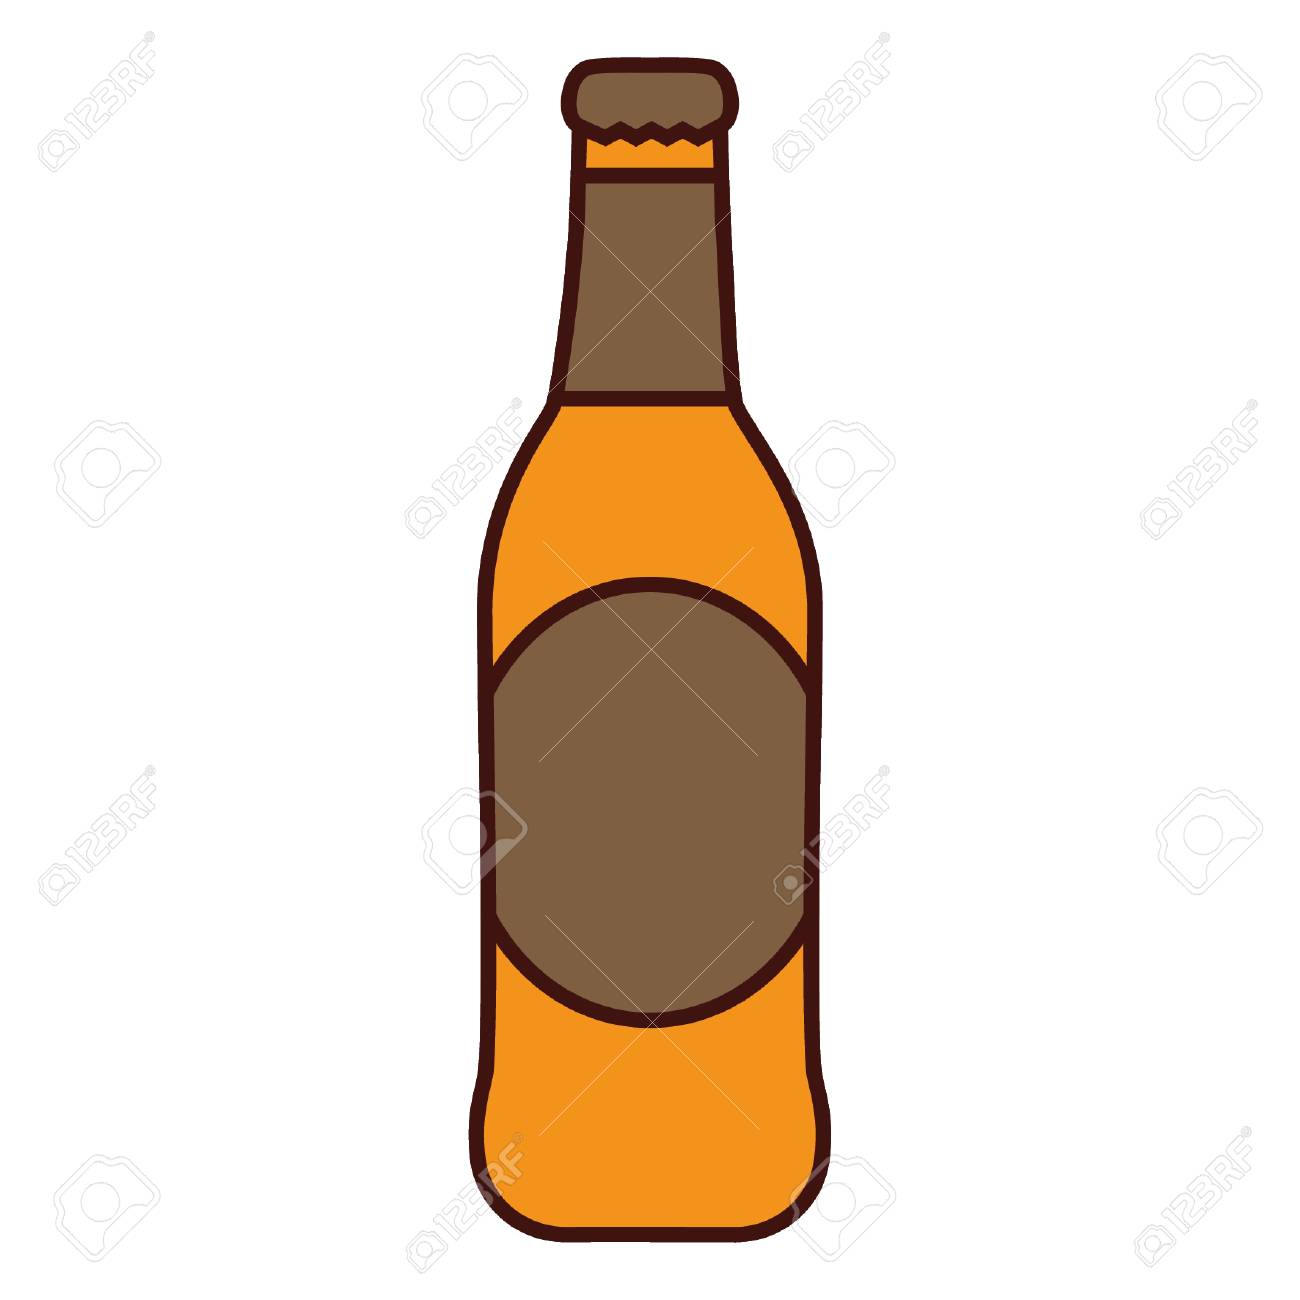 beer bottle icon pub alcohol bar brewery and drink theme isolated rh 123rf com beer bottle vector png beer bottle vector illustrator